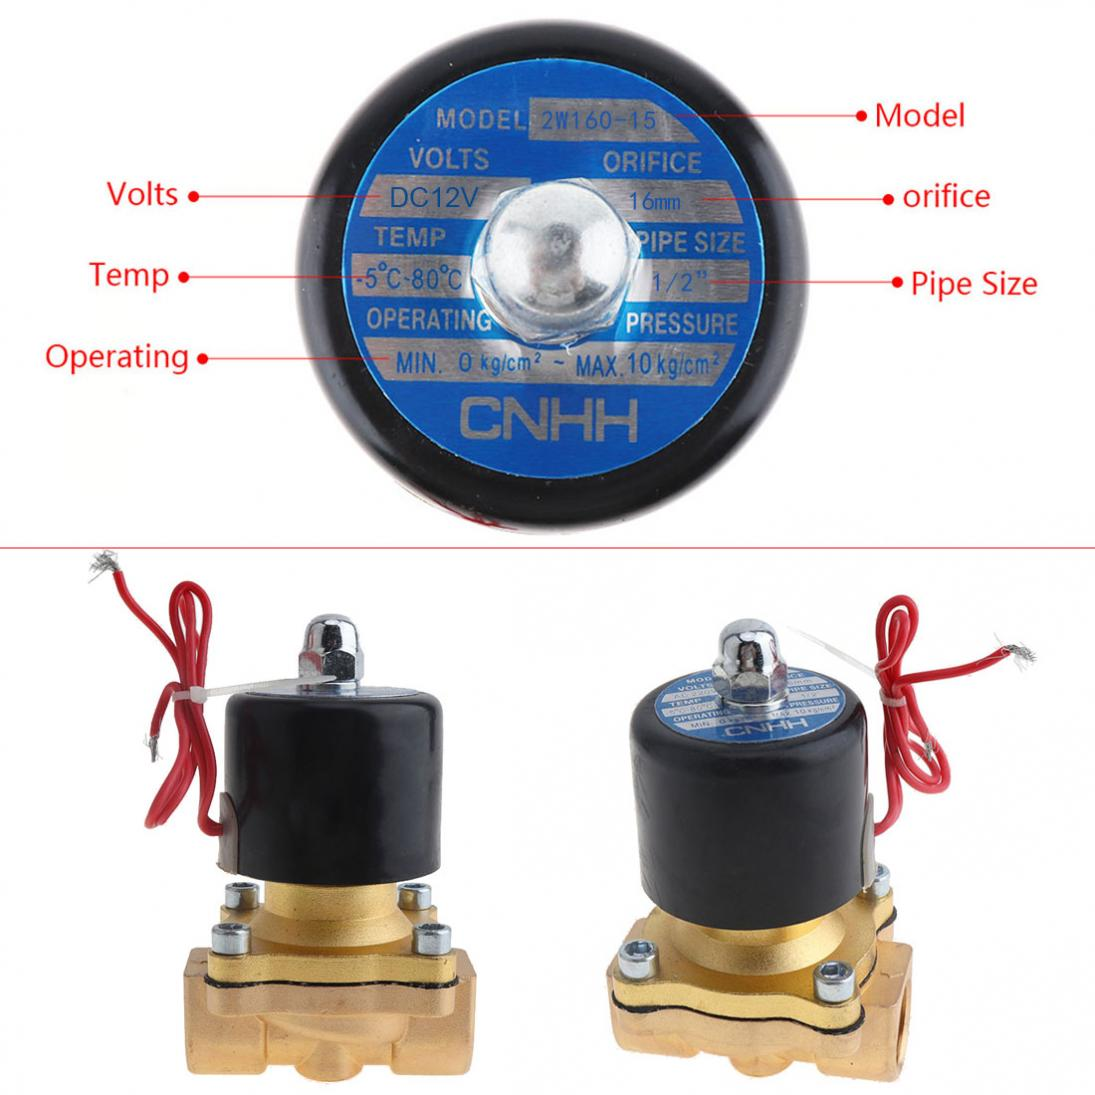 1-2-039-039-DC12-Brass-Electric-Solenoid-Valve-N-C-Gas-Water-Fuel-Air-Solid-Coil-New thumbnail 4